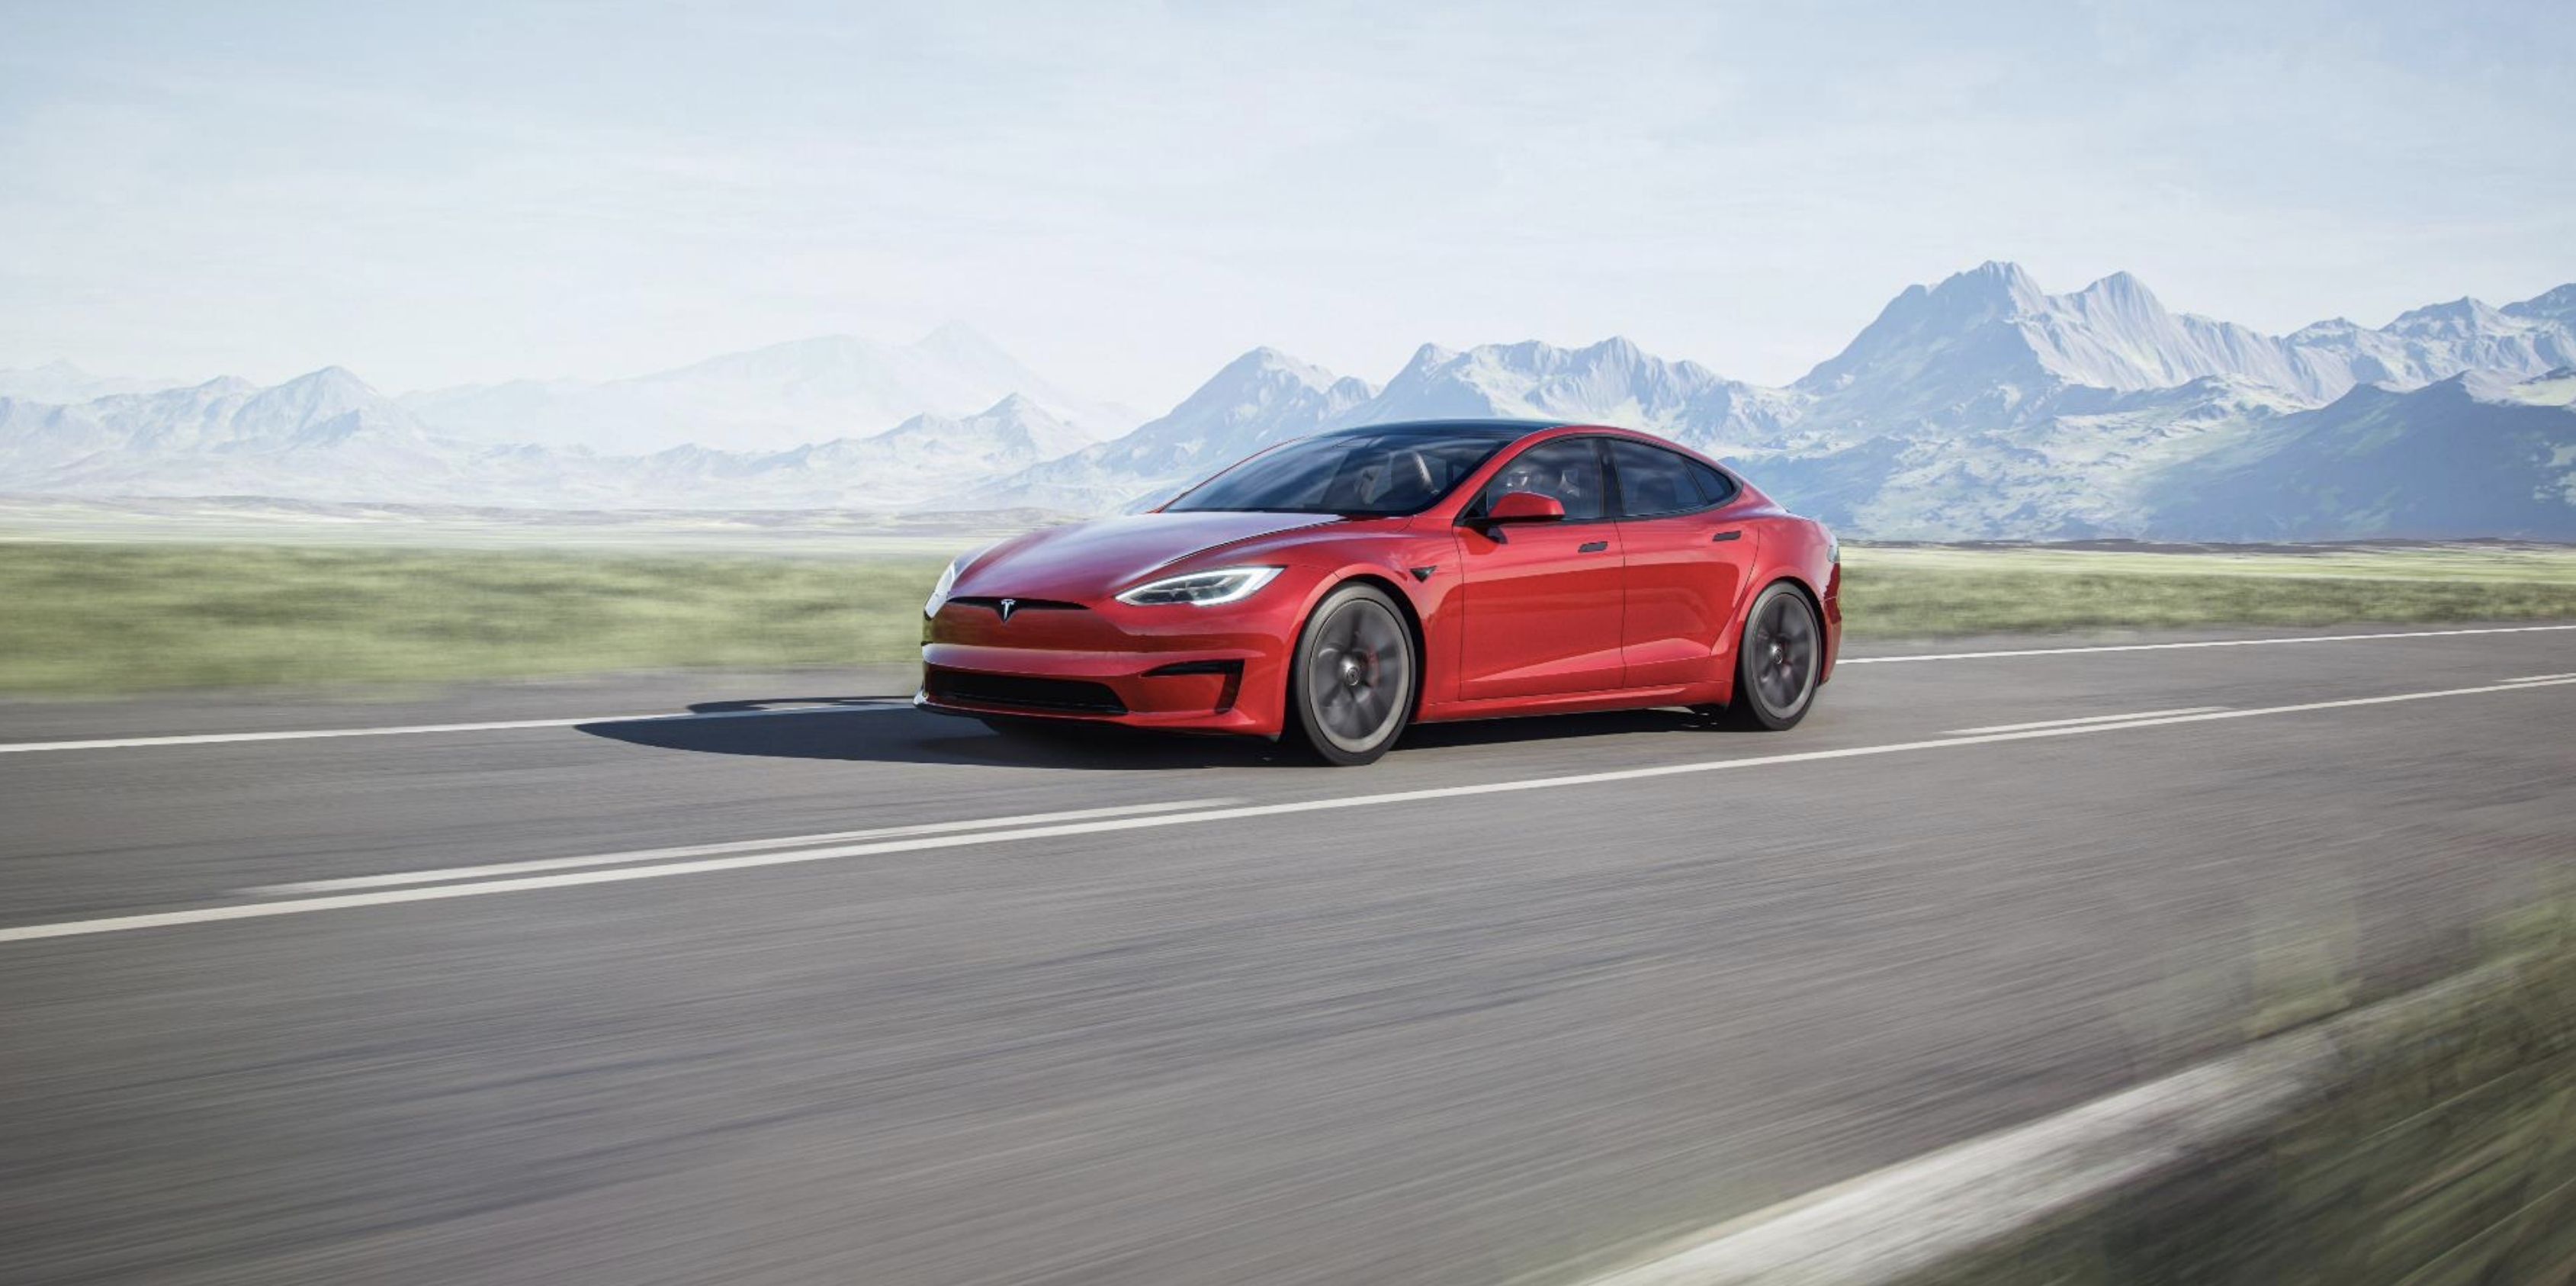 """Tesla 2020 Q4 Earnings:  """"We expect to achieve 50% annual growth in vehicle deliveries"""""""